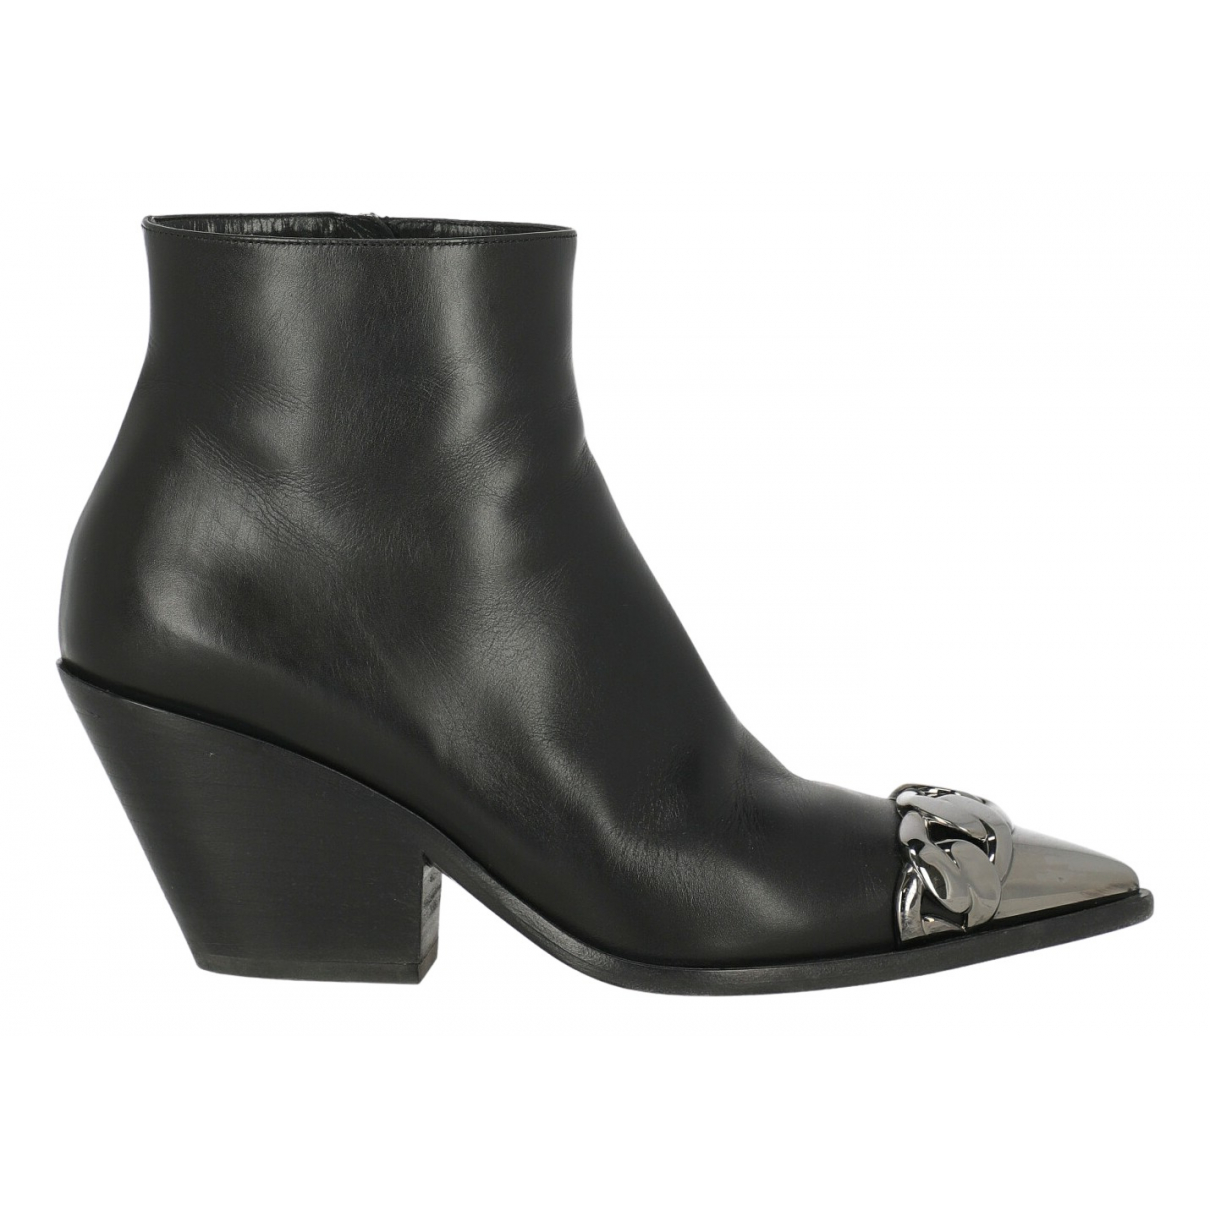 Casadei N Black Leather Ankle boots for Women 38 IT